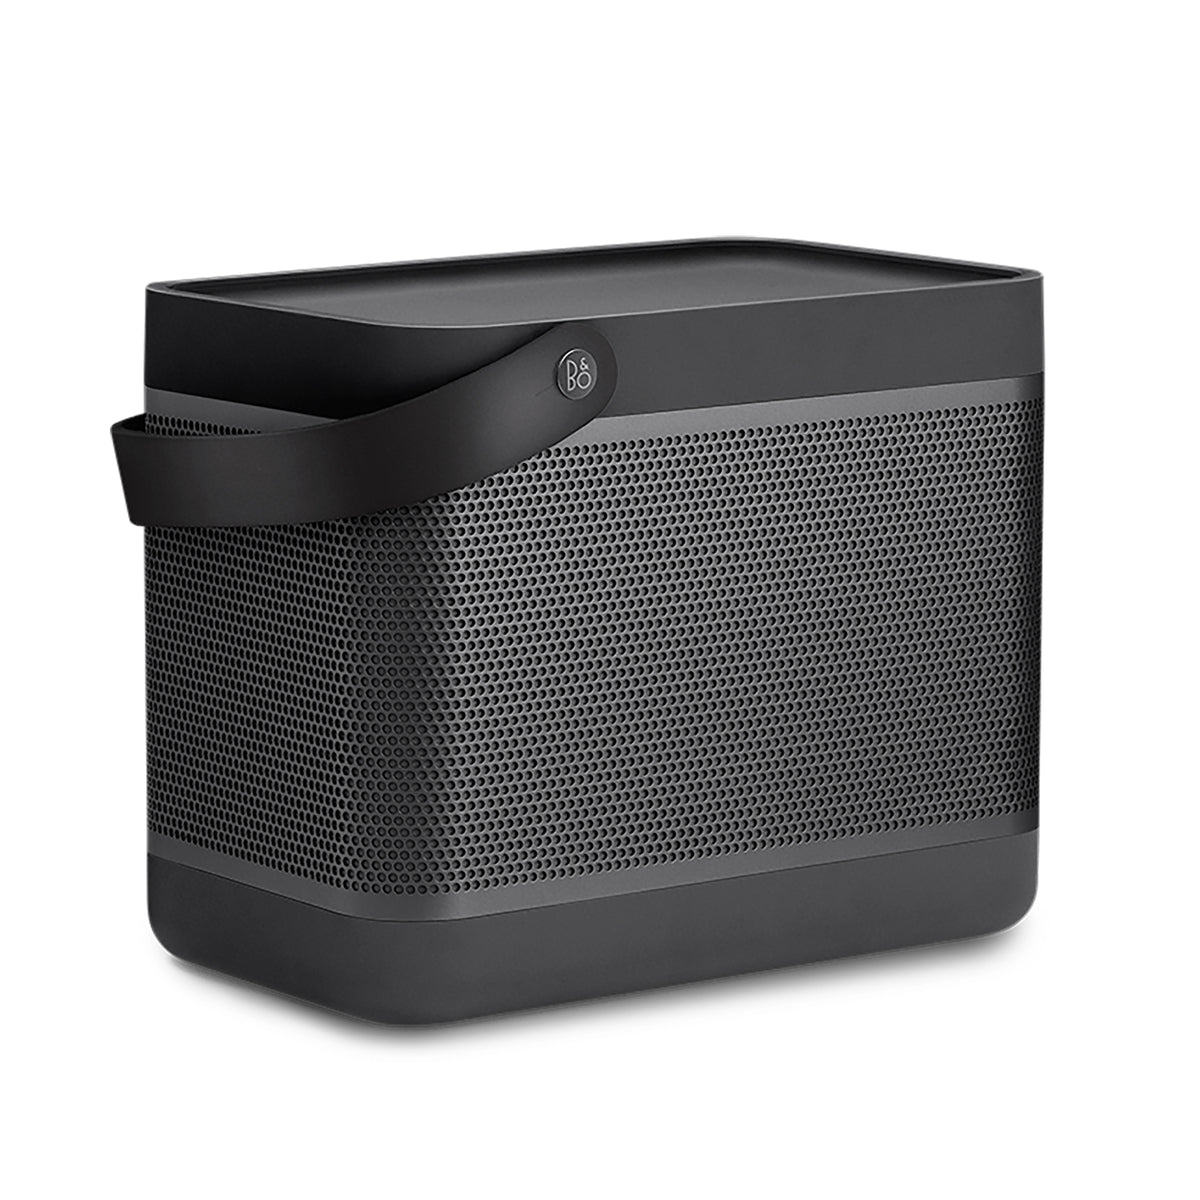 B&O Play: Beolit 17 Active Portable Bluetooth Speaker - Stone Grey